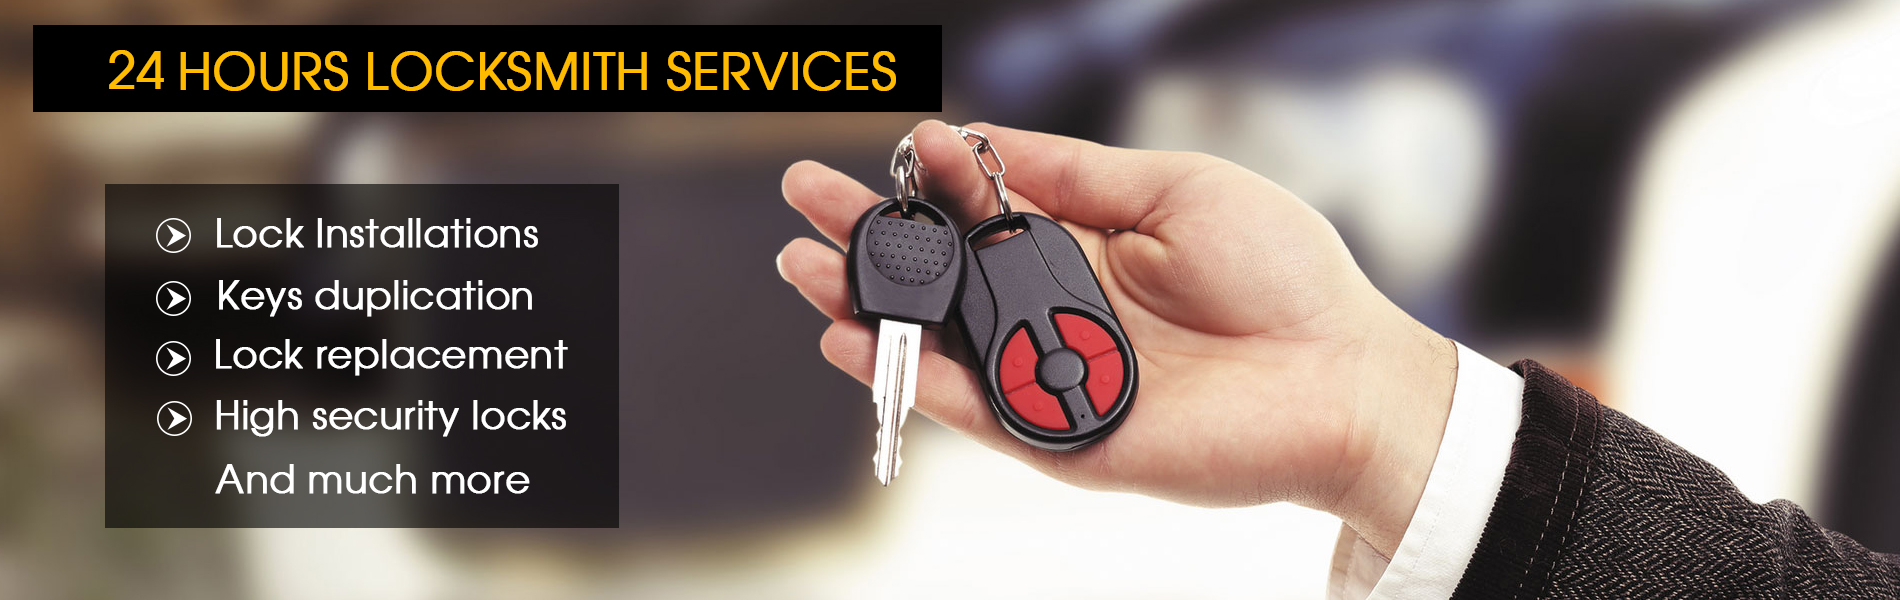 Exclusive Locksmith Service Brandon, FL 813-261-4748